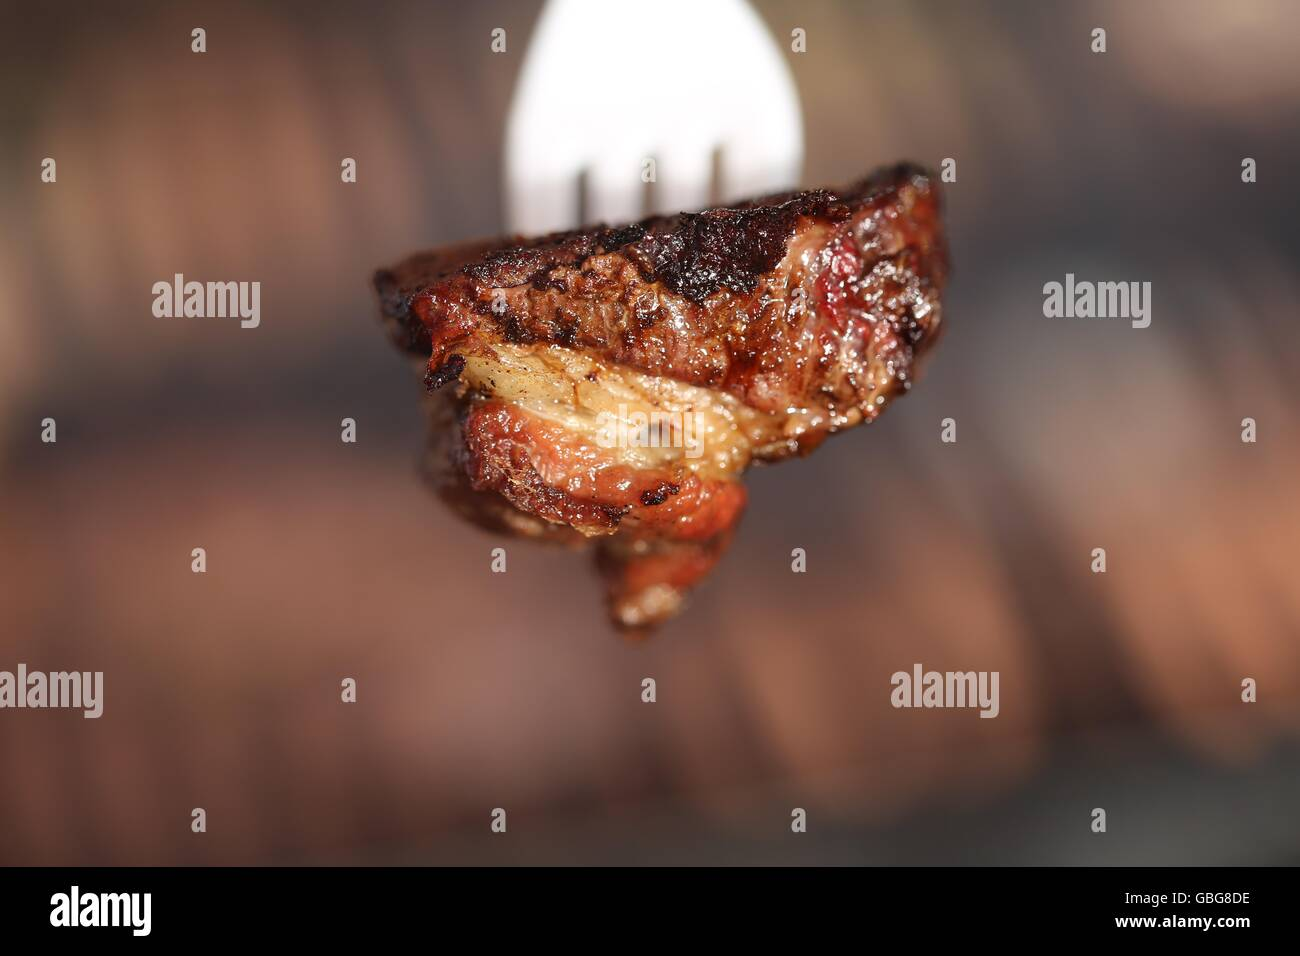 Piece of Rare Beef Meat on a Plastic Fork. Piece of sinta steak on a disposable fork, close up. Red meat stuck on - Stock Image